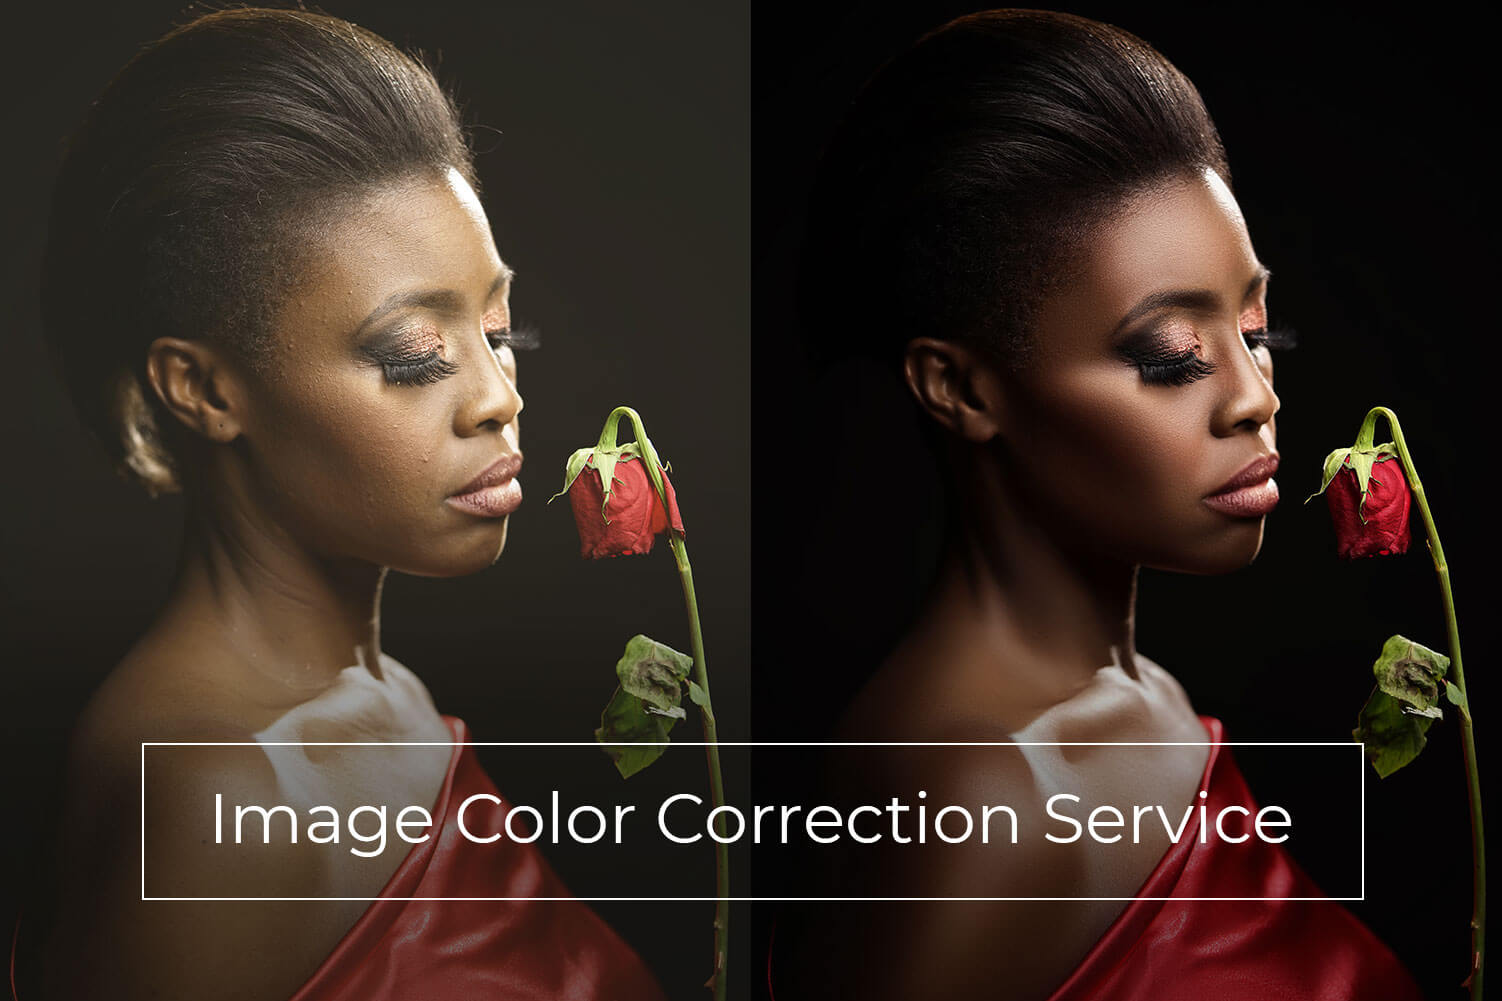 Image Color Correction Service